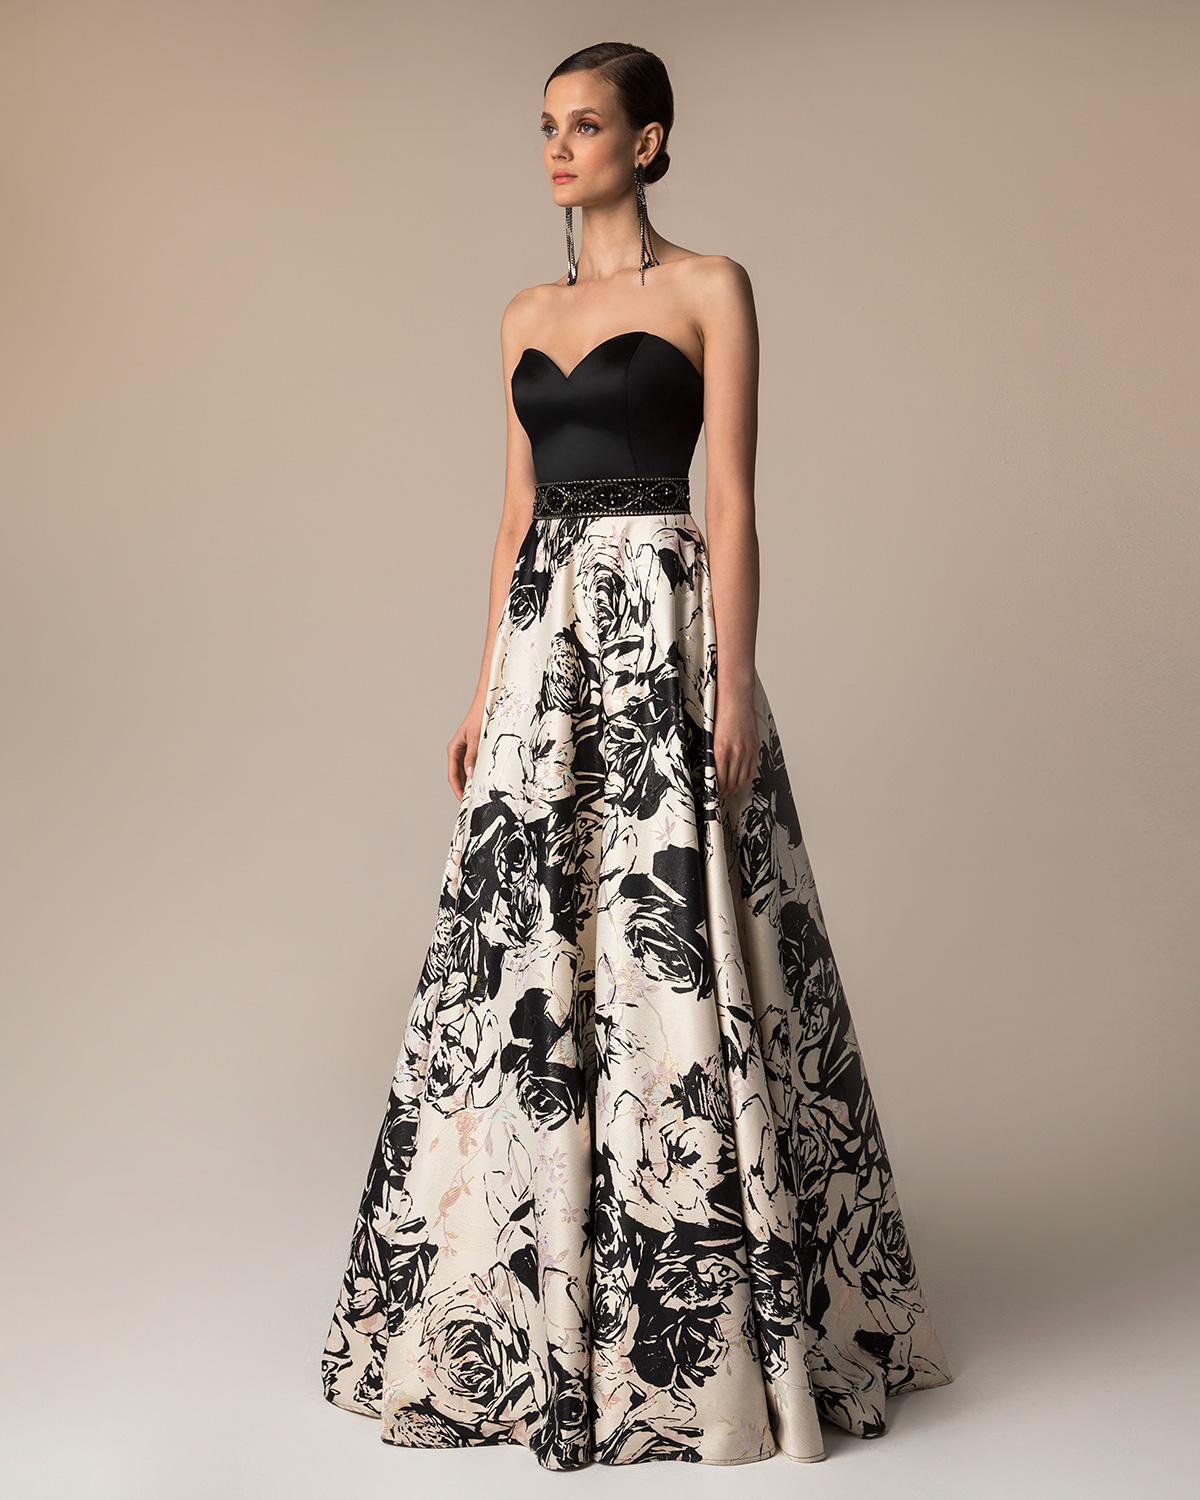 Long evening printed dress with beading around the waist